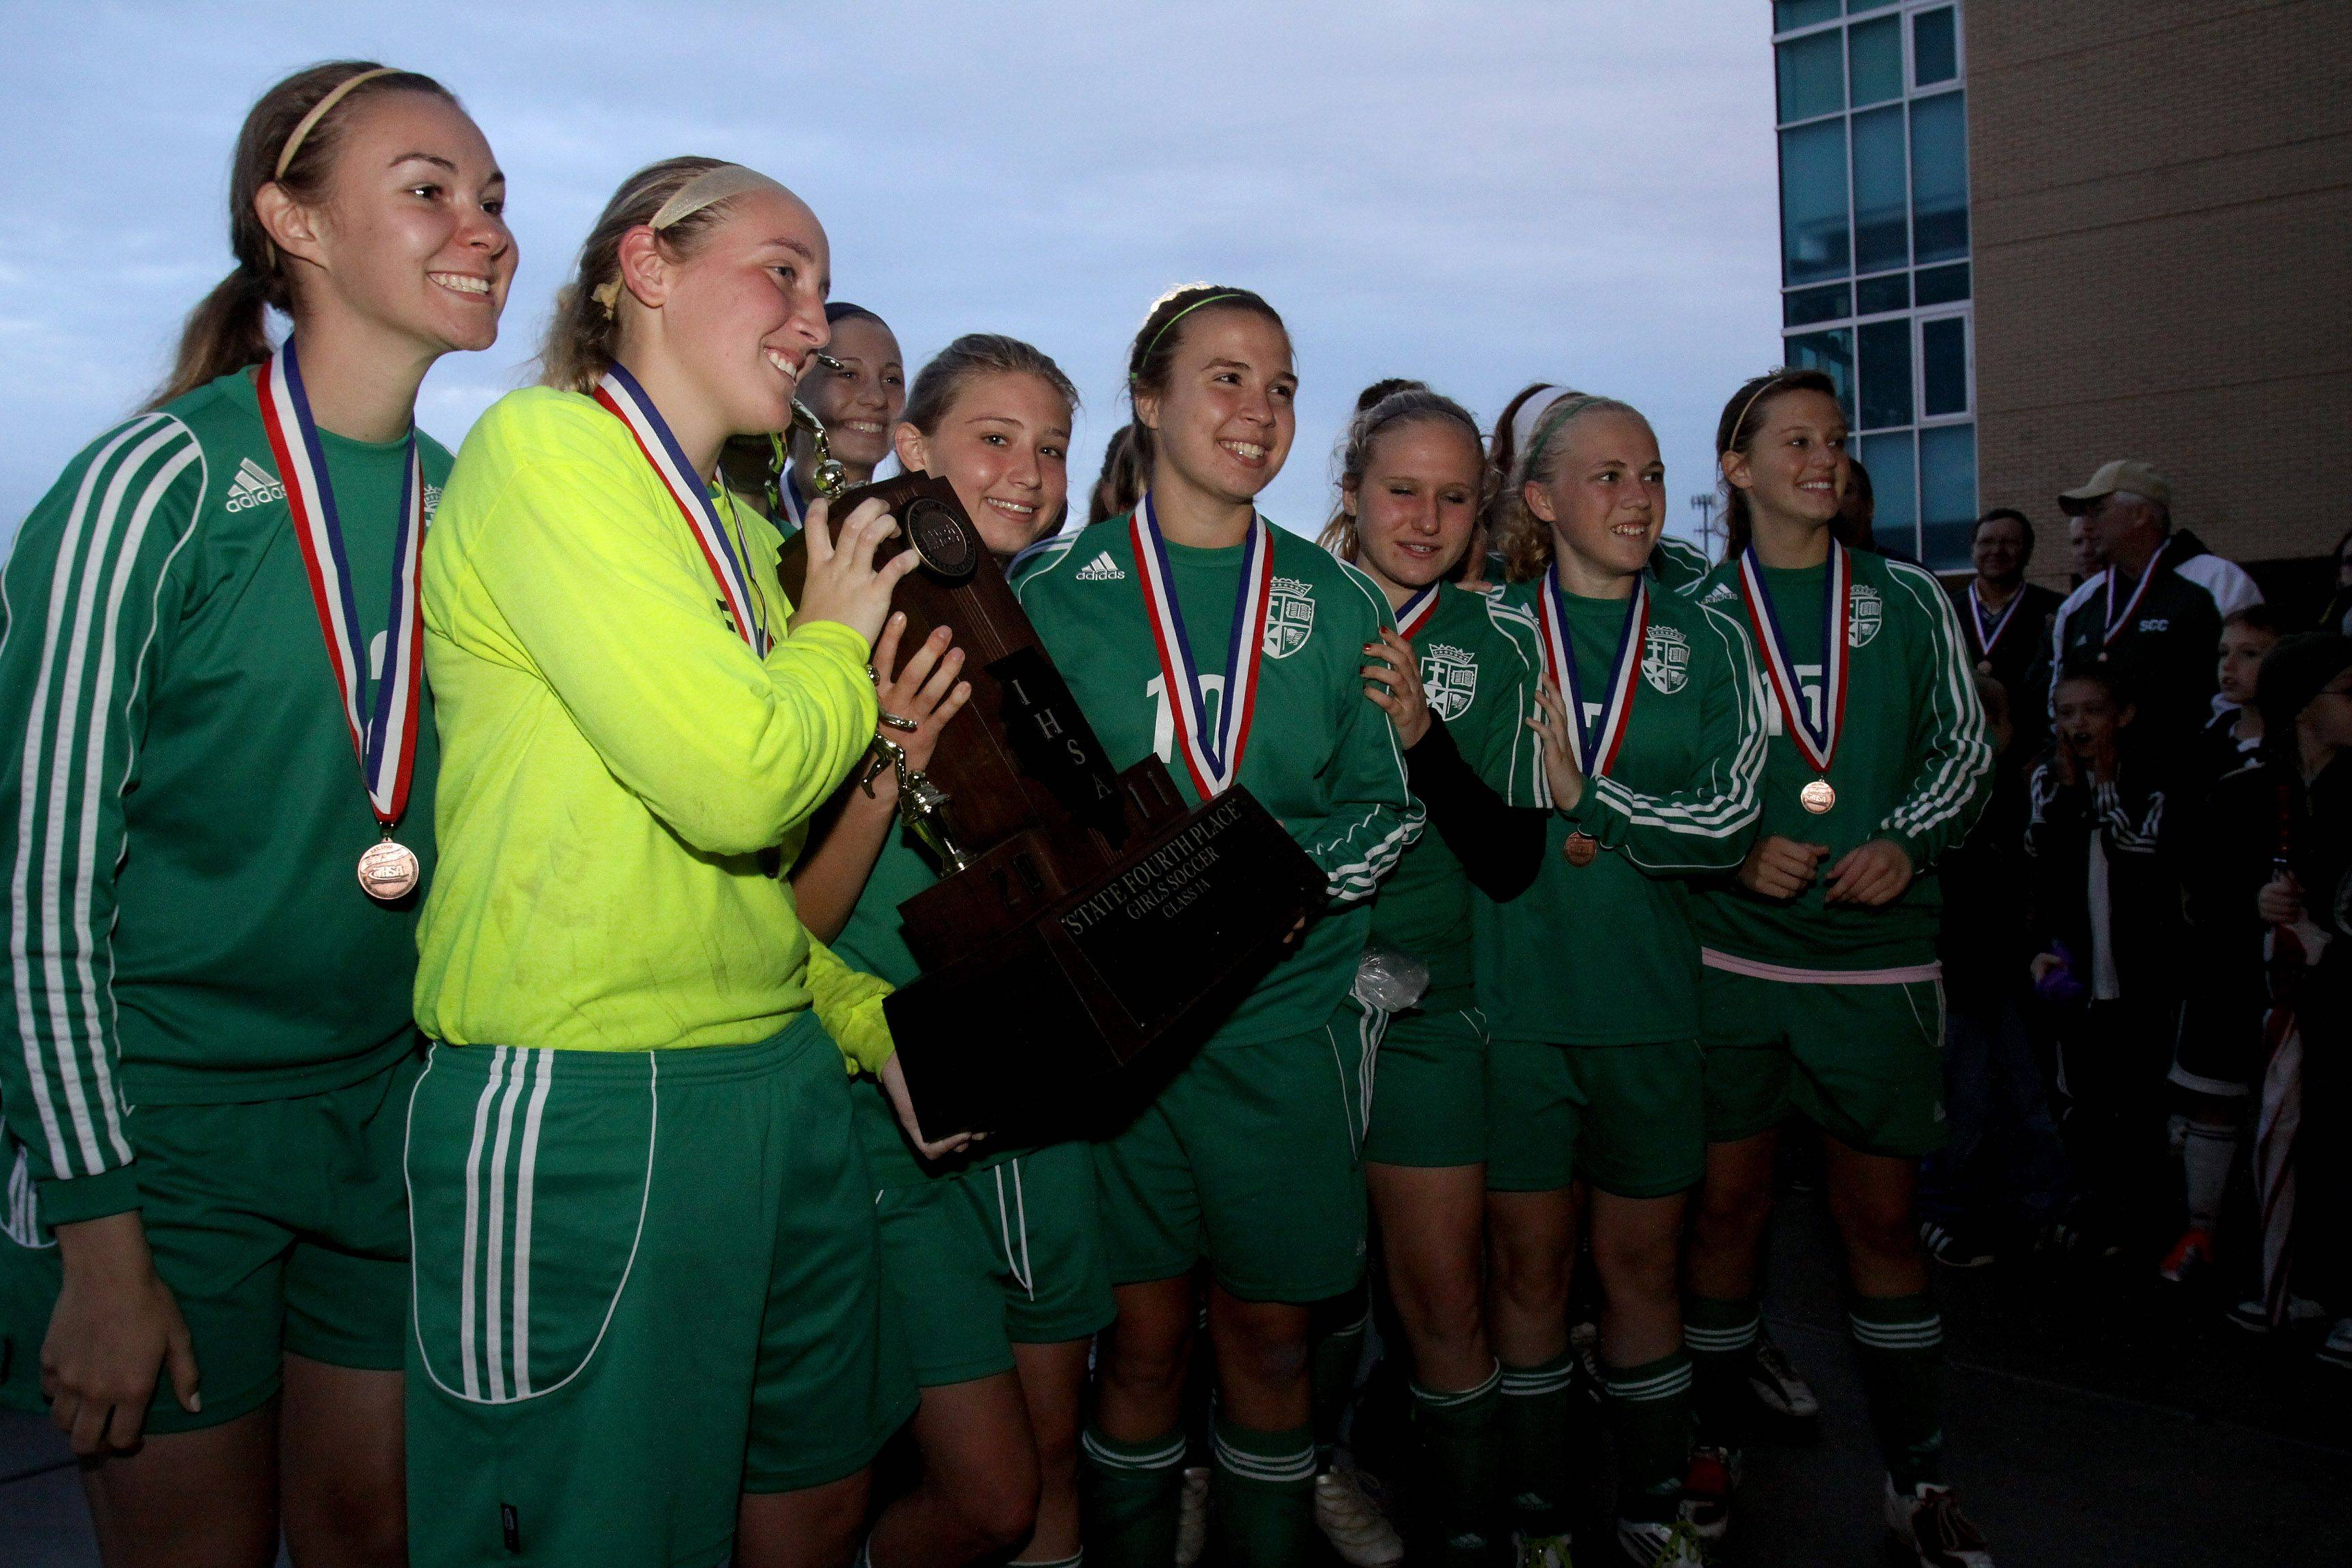 St. Edward pose with their fourth place trophy for Class 1A state soccer in Naperville on Saturday.